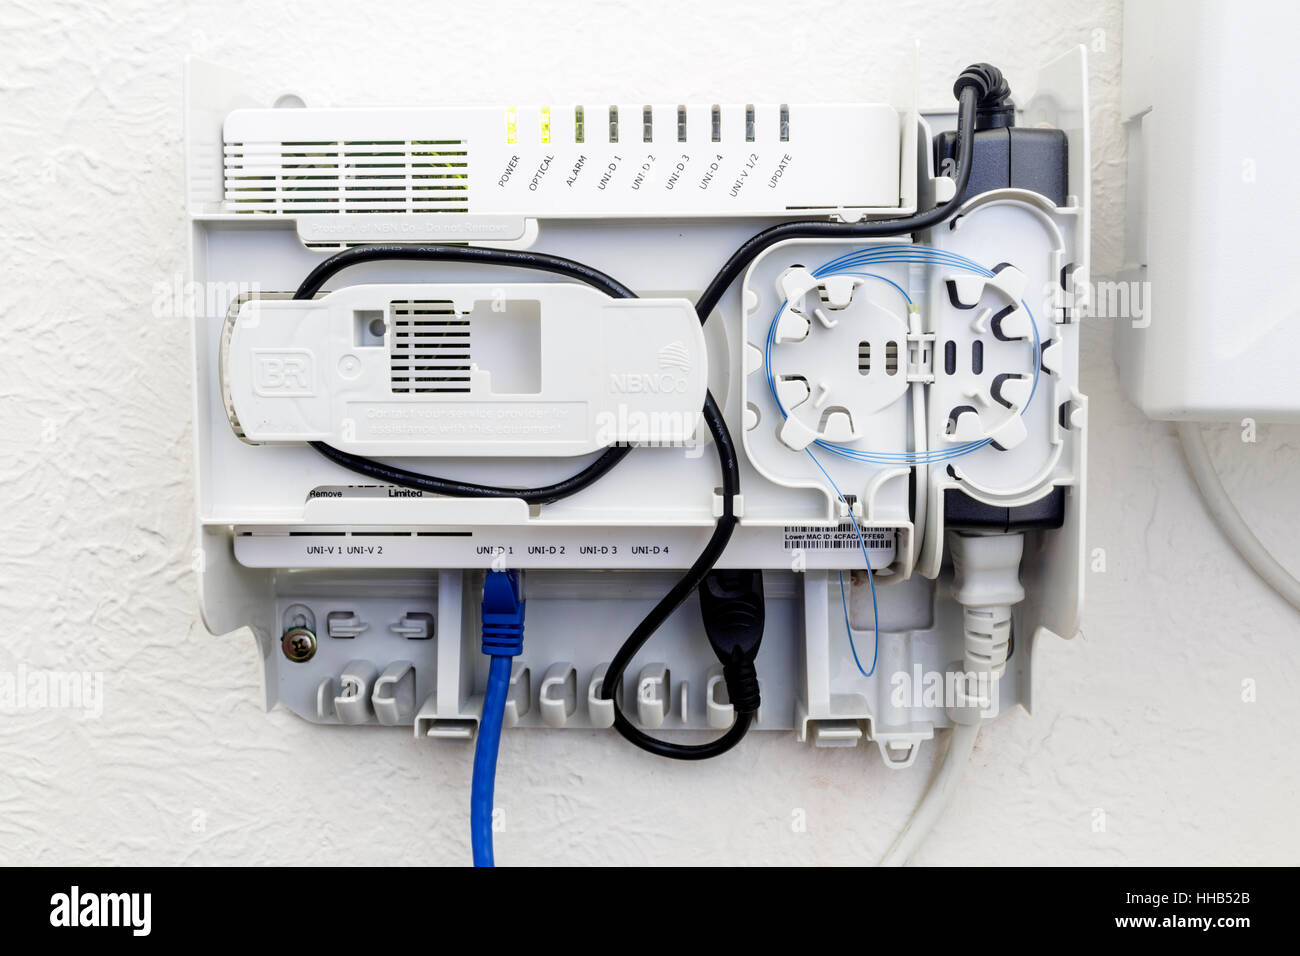 Nbn Stock Photos Images Alamy Wiring Your House For Connection Box With Th Cover Open On A Wall Inside Home